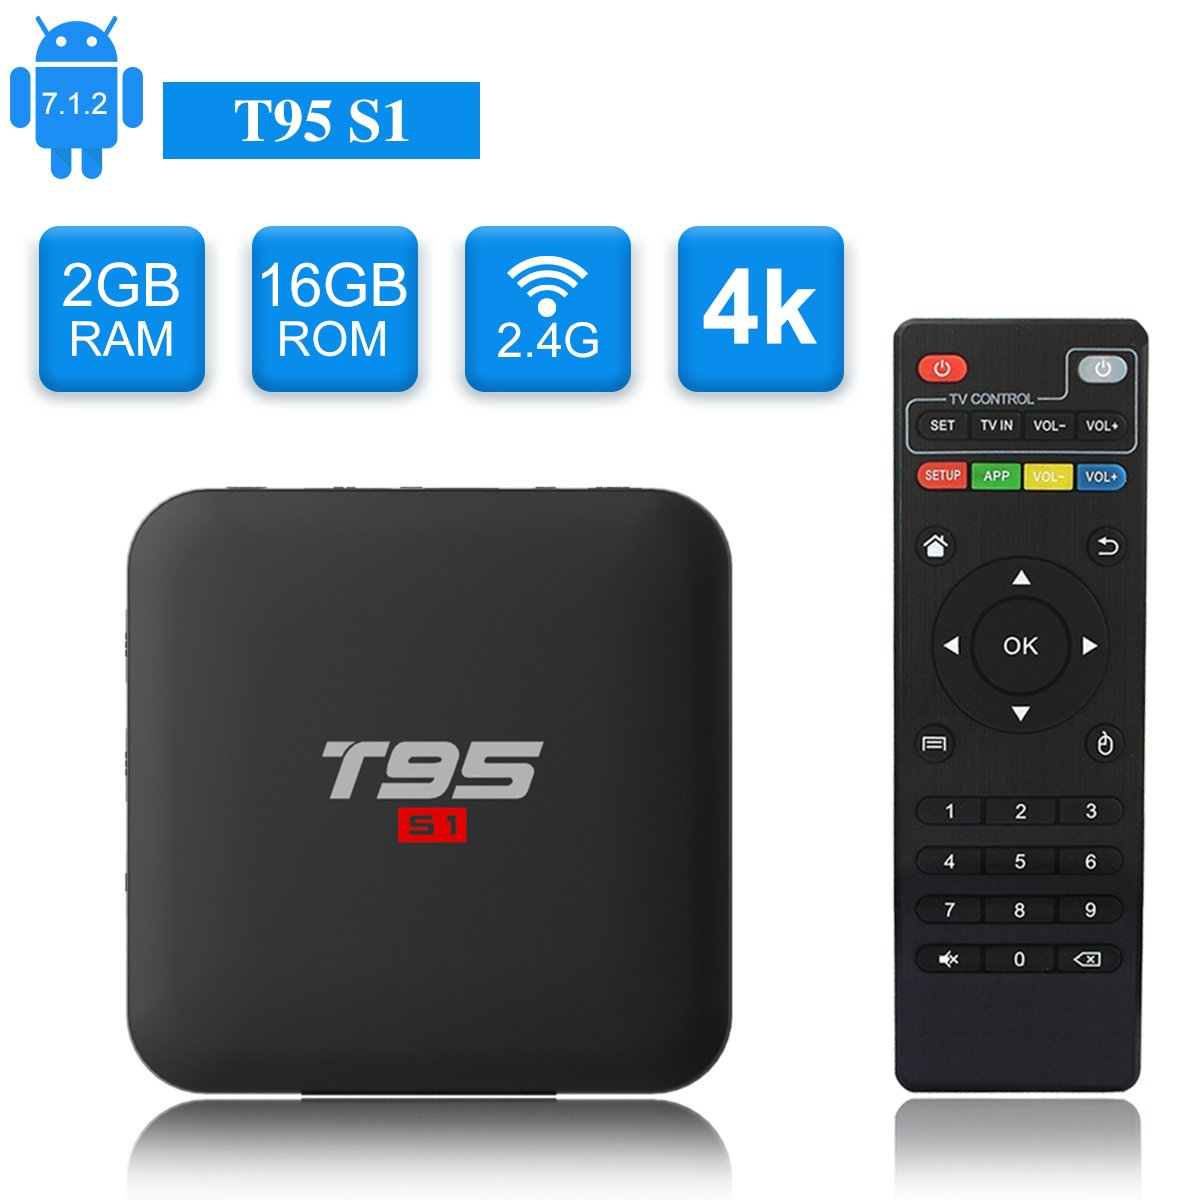 T95 S1 Android TV Box, Android 7.1 Amlogic S905W Quad Core 2GB/16GB with Digital Display HDMI HD 4K Ethernet WiFi 2.4GHz by Turewell (Image #1)